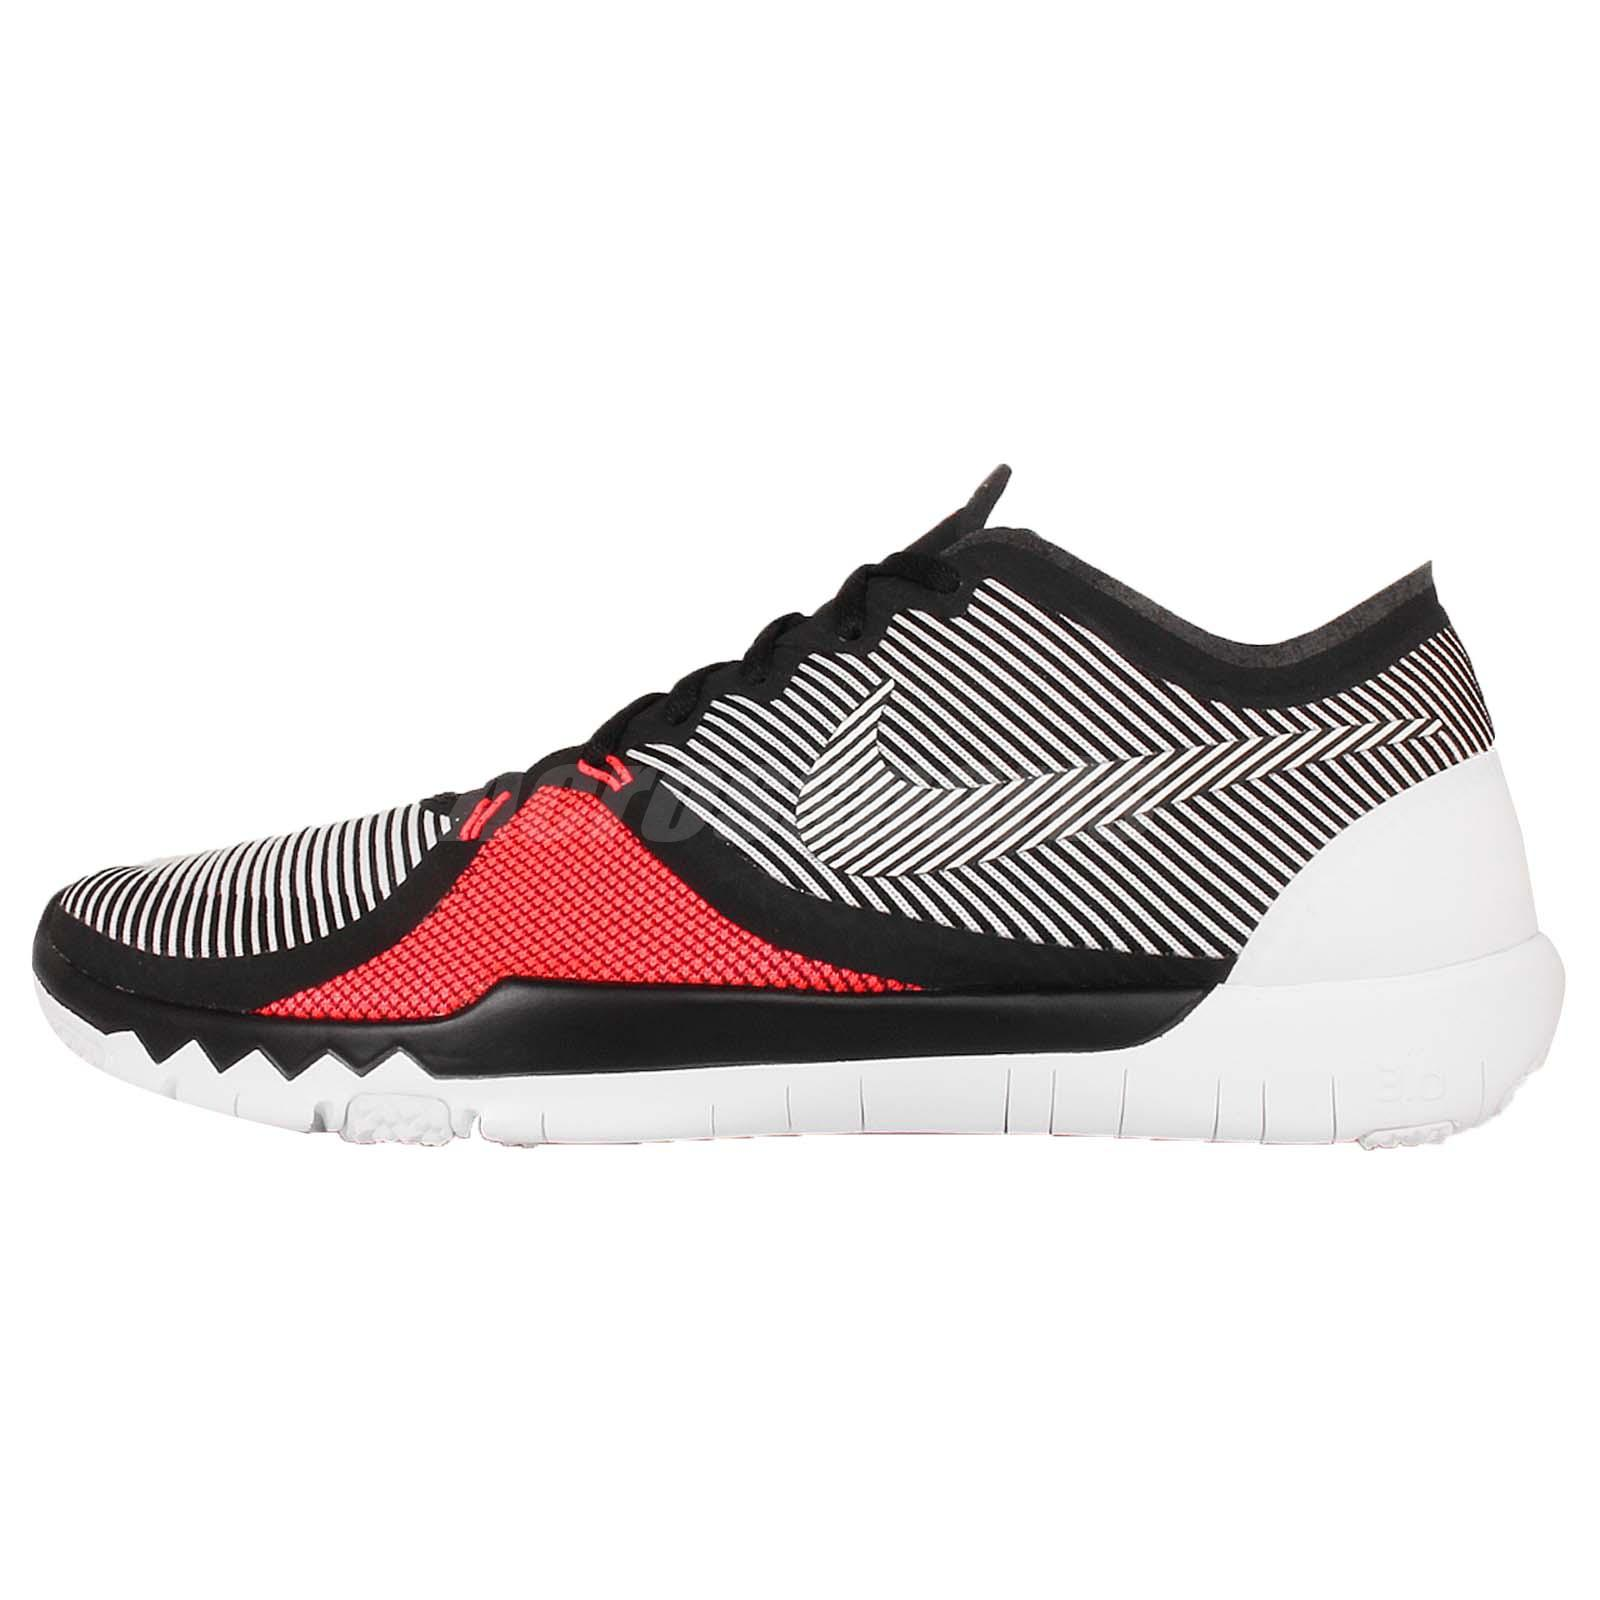 official photos 714f8 a6ba6 Nike Free Men s Athletic Shoes   eBay